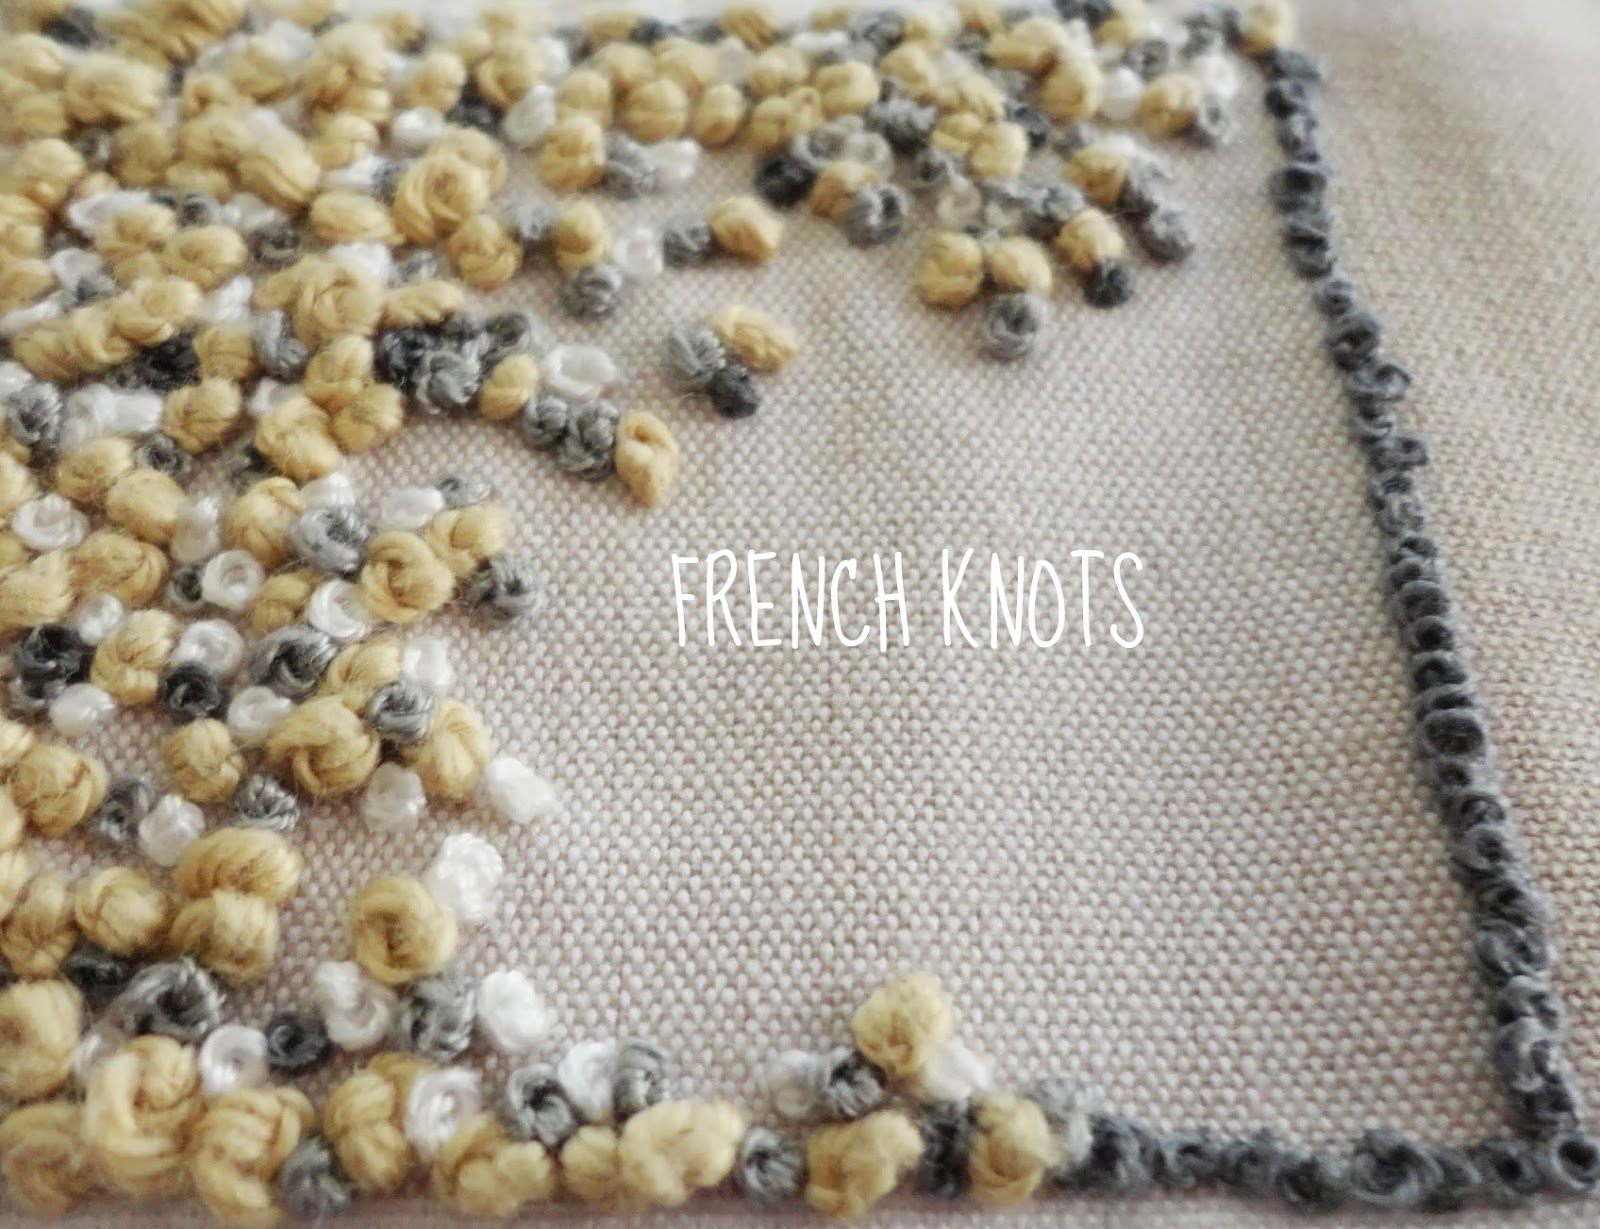 French Knots Words Hand Embroidery Journey